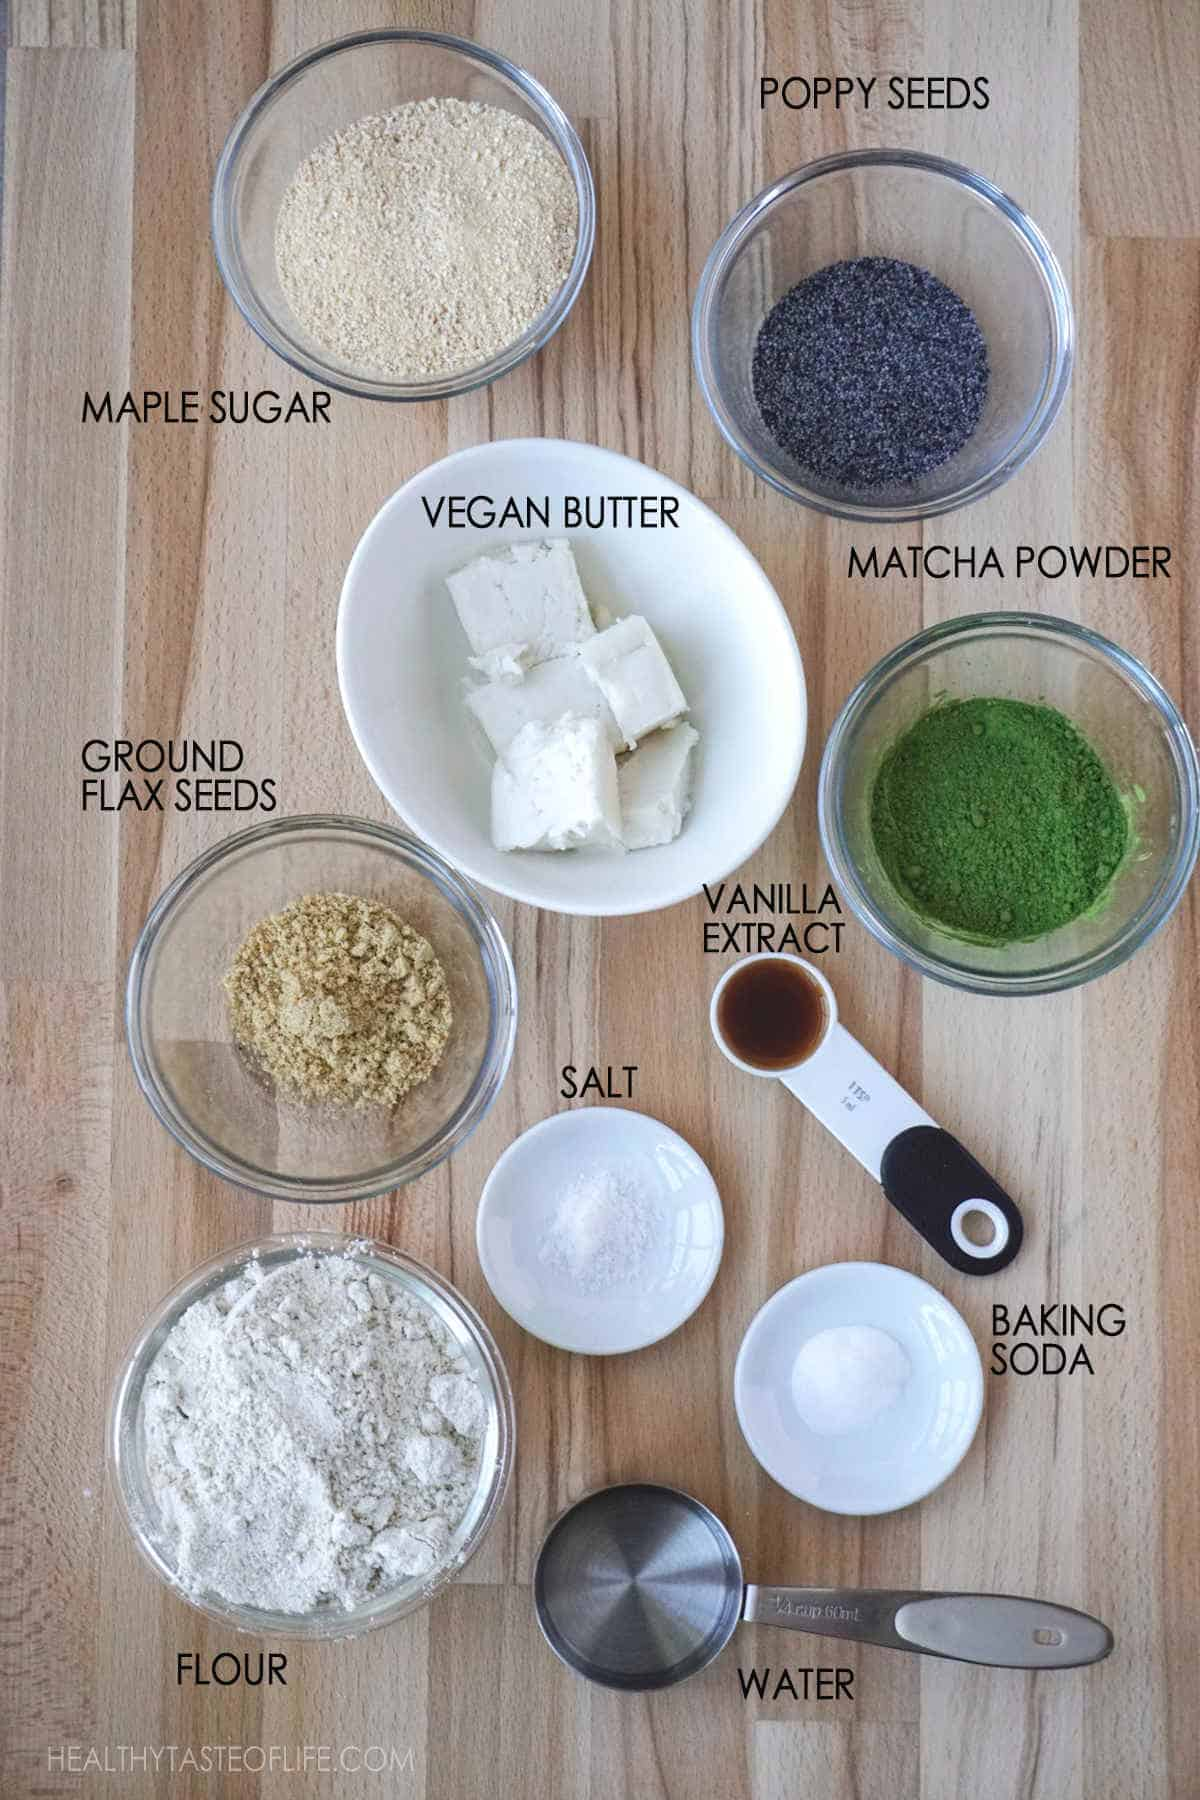 Ingredients for matcha cookies. How to make matcha cookies with matcha powder and vegan ingredients